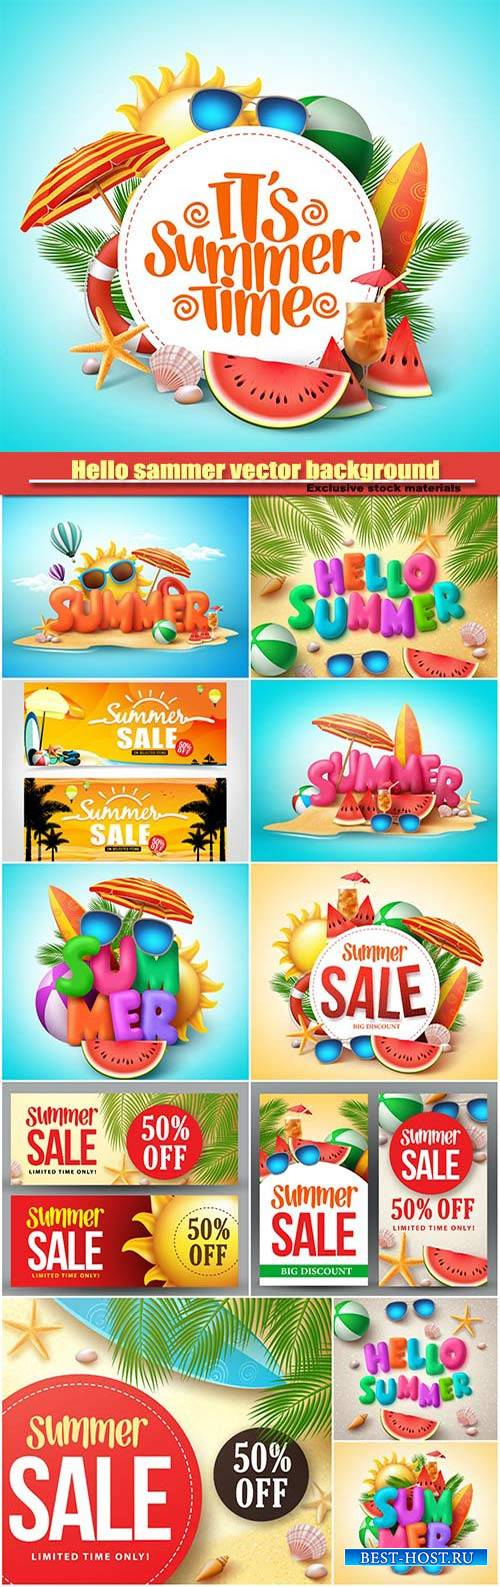 Hello summer vector background, sammer sale